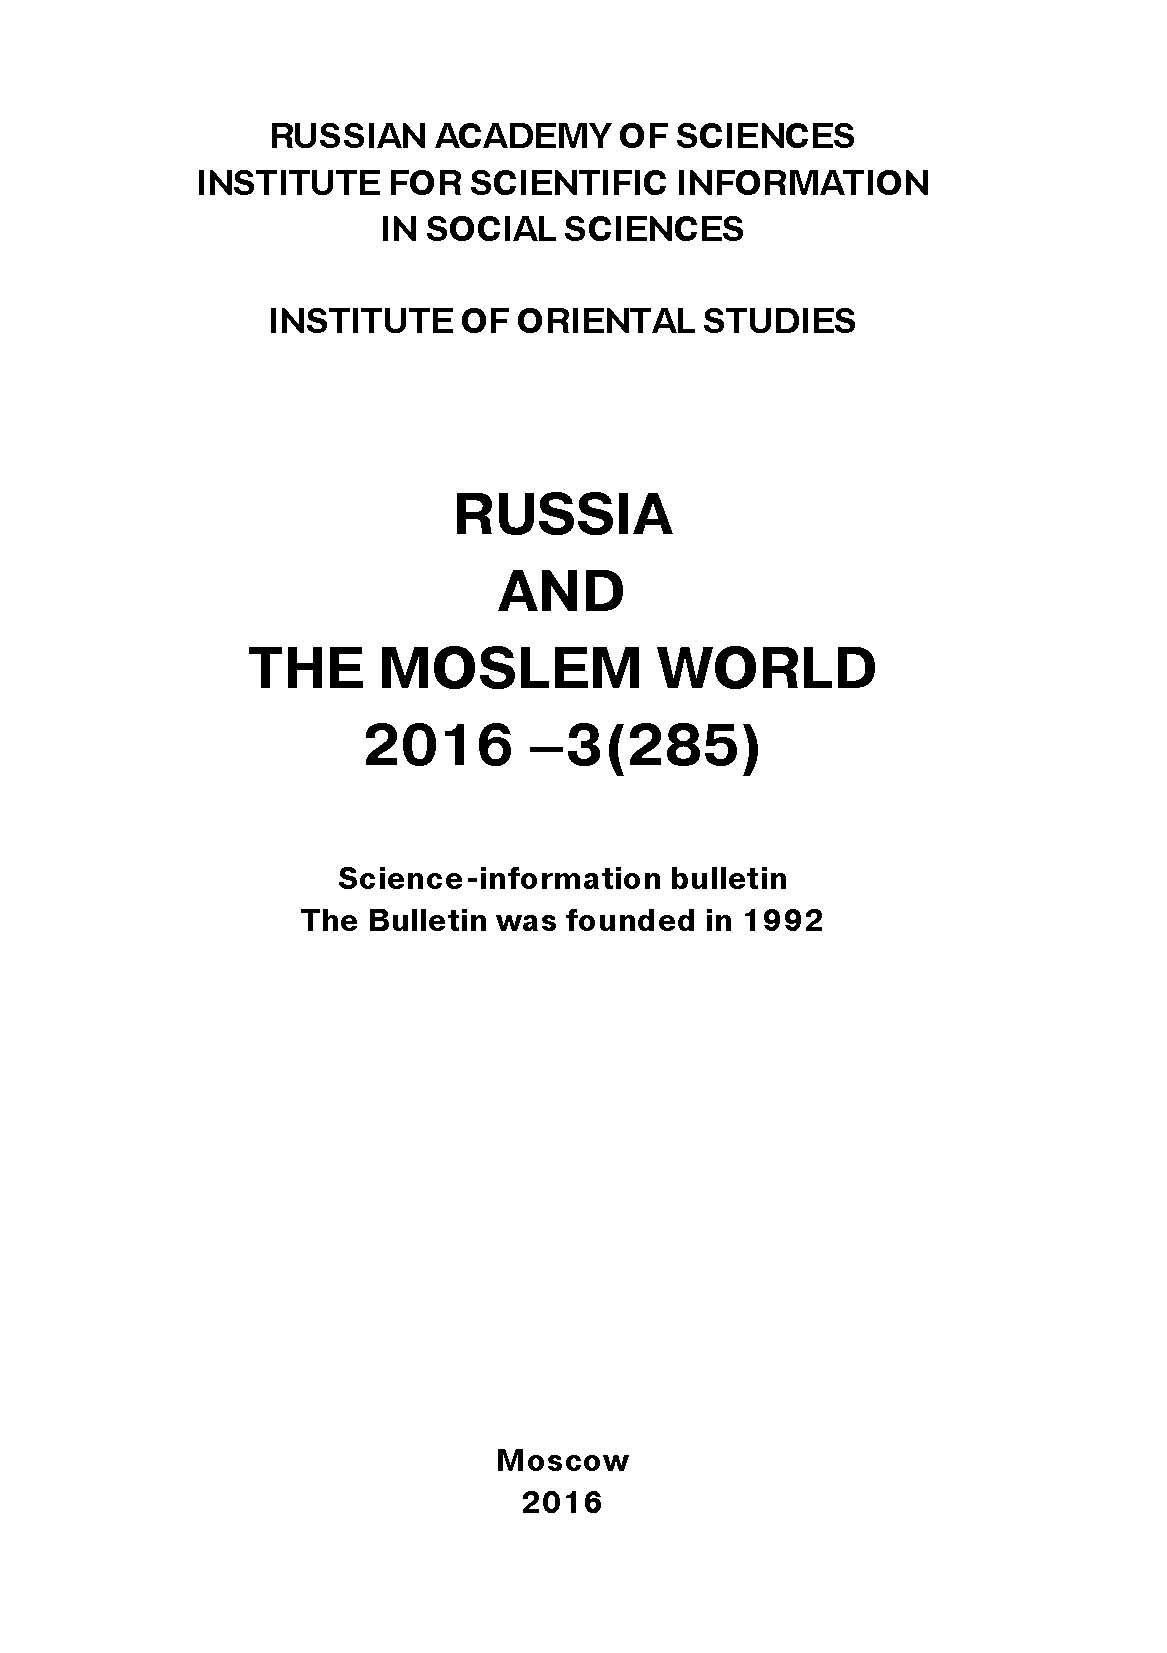 Сборник статей Russia and the Moslem World № 03 / 2016 сборник статей russia and the moslem world 05 2016